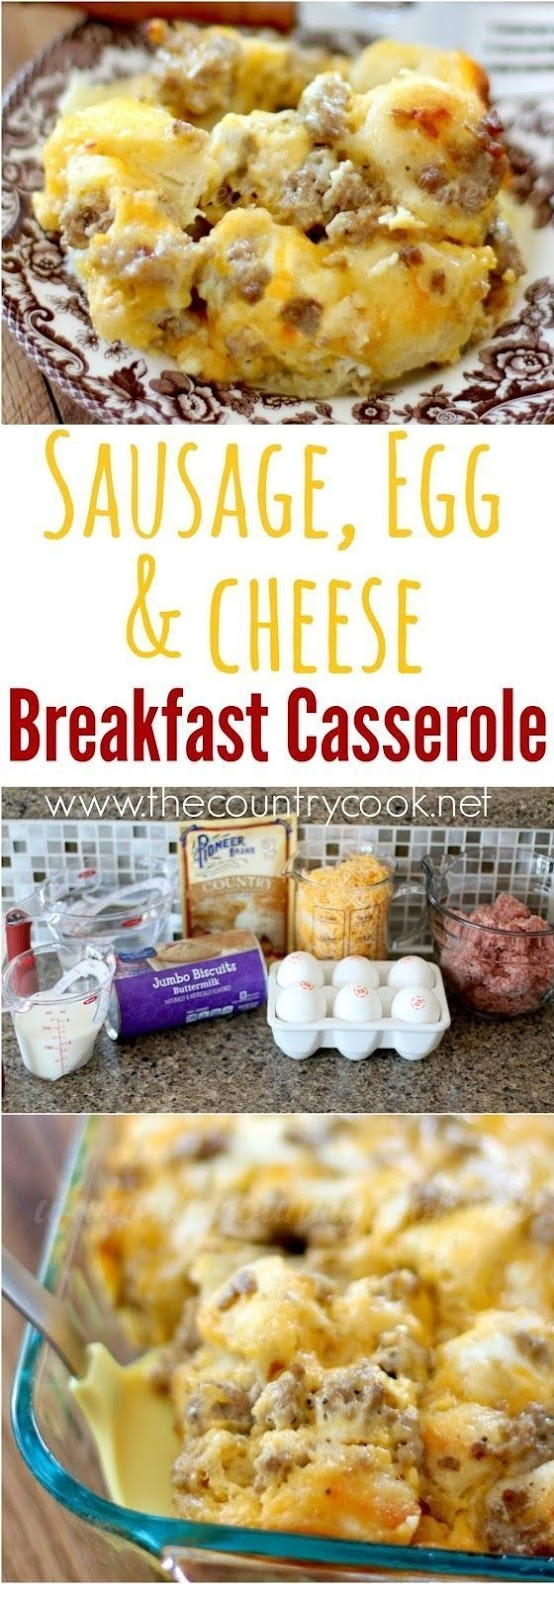 Sausage, Egg, Cheese Biscuit Casserole